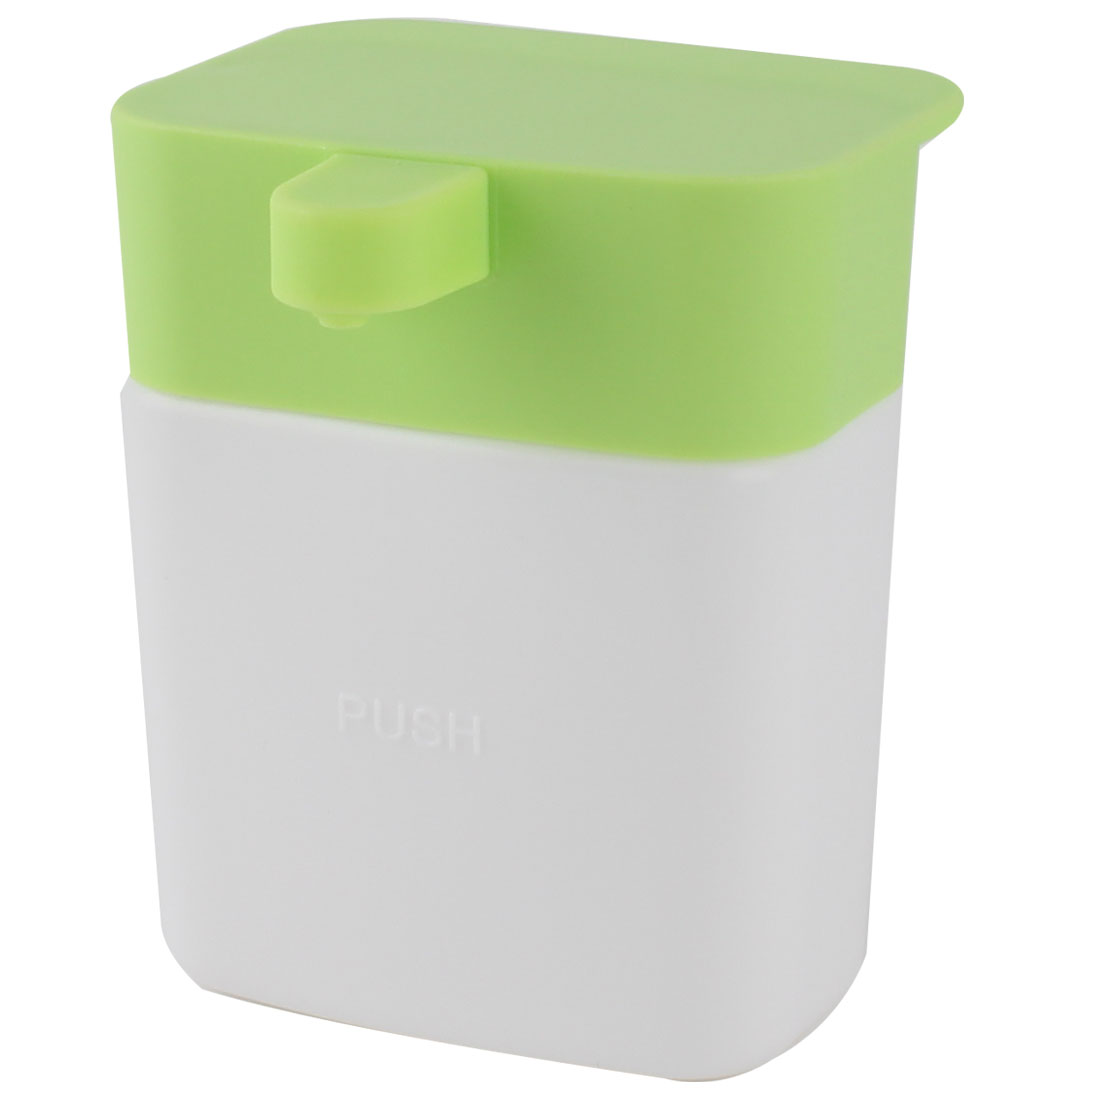 Household Kitchen Plastic Dishwashing Liquid Suction Cup Storage Box Holder Green 200ml